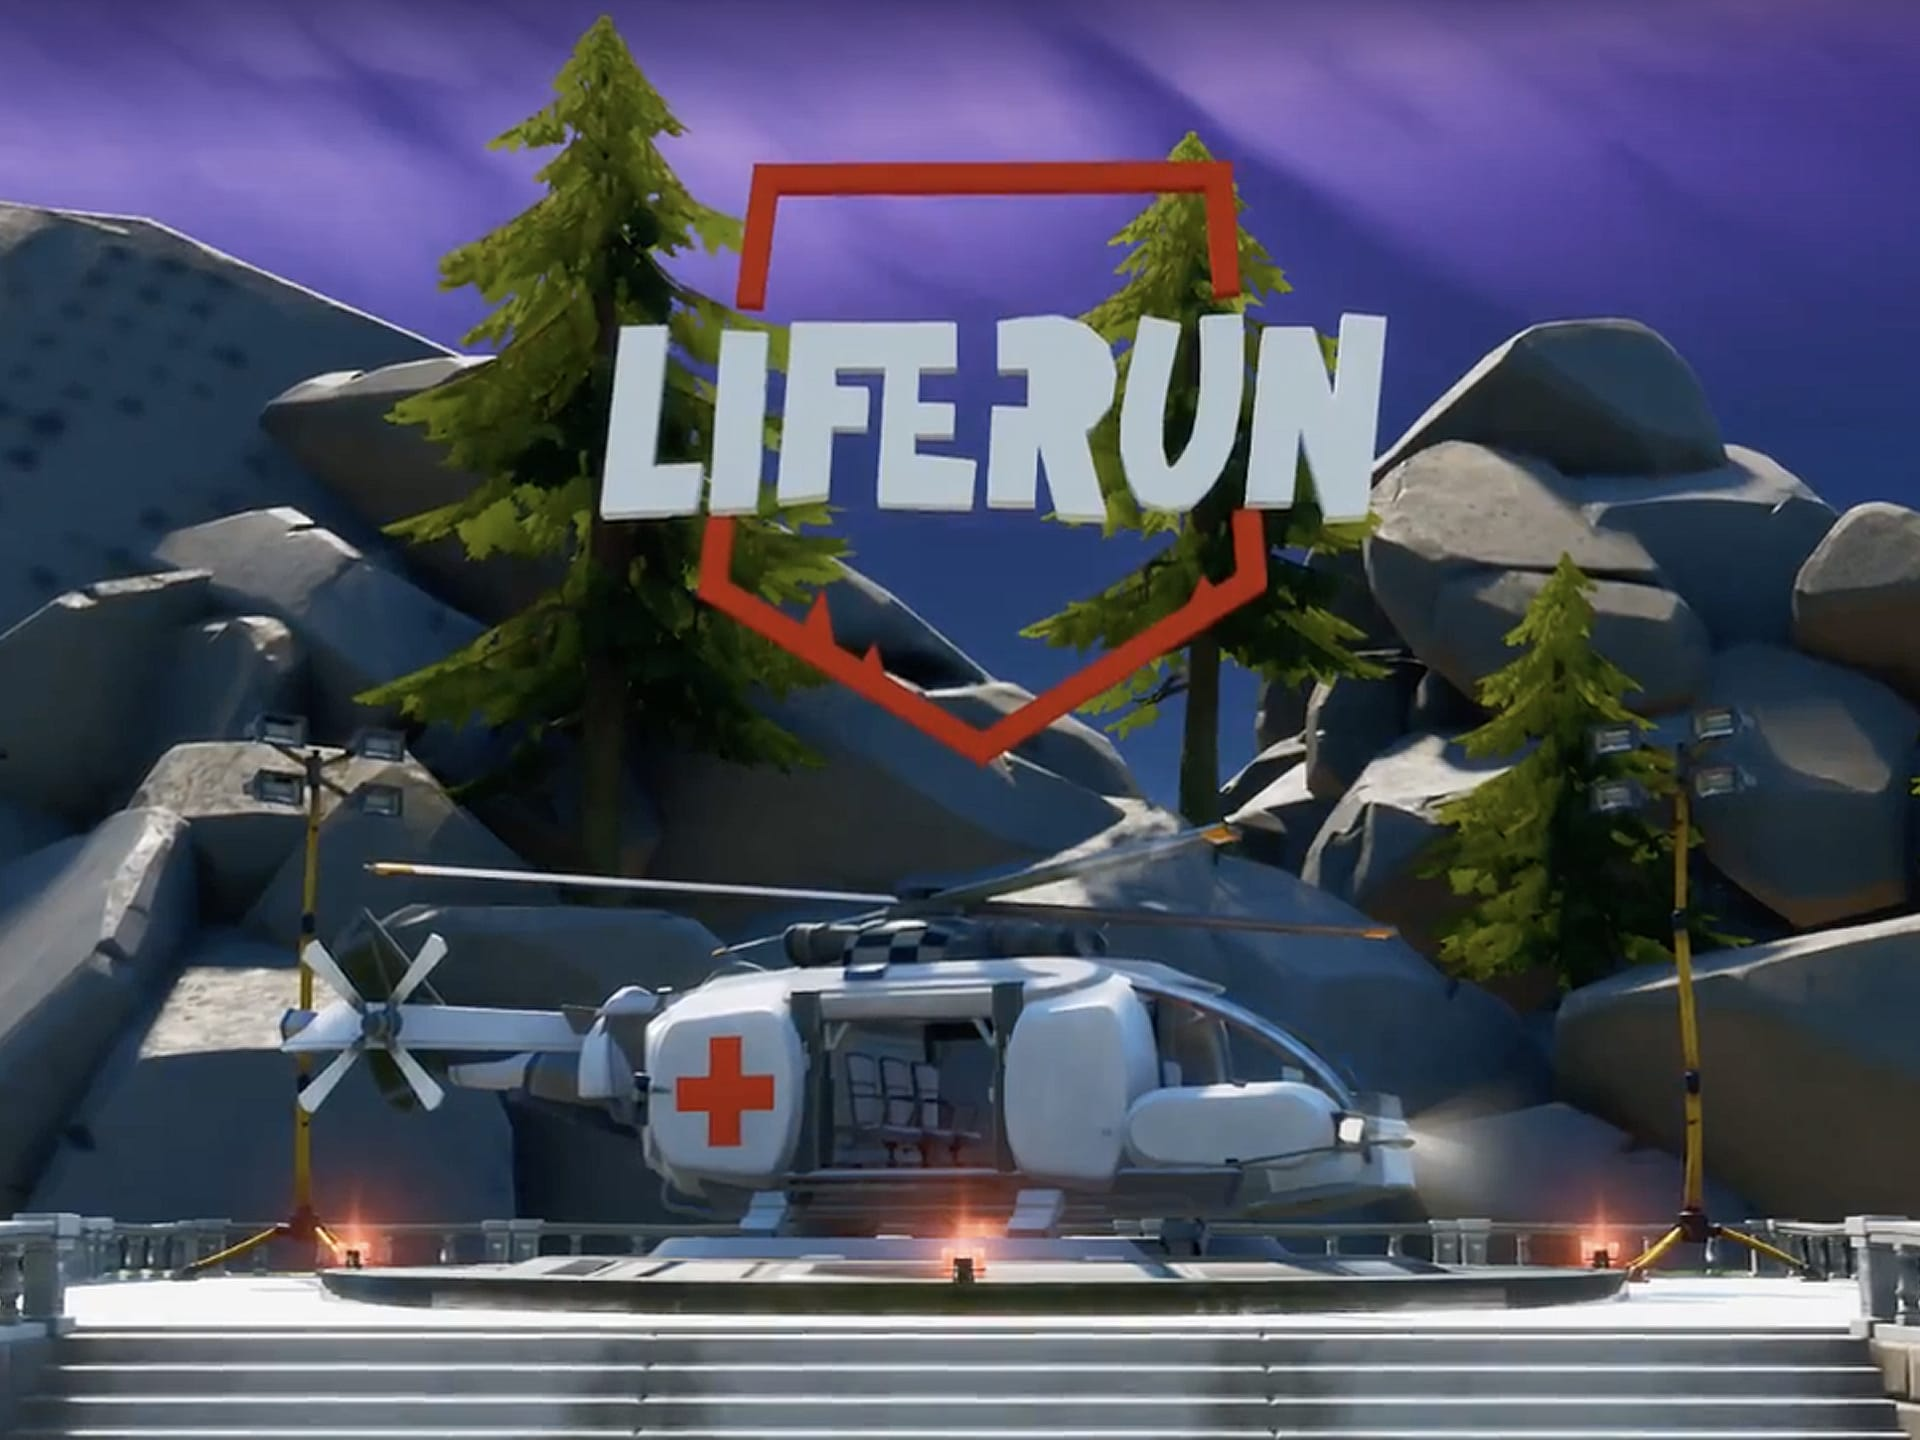 LIFERUN HERO IMAGE